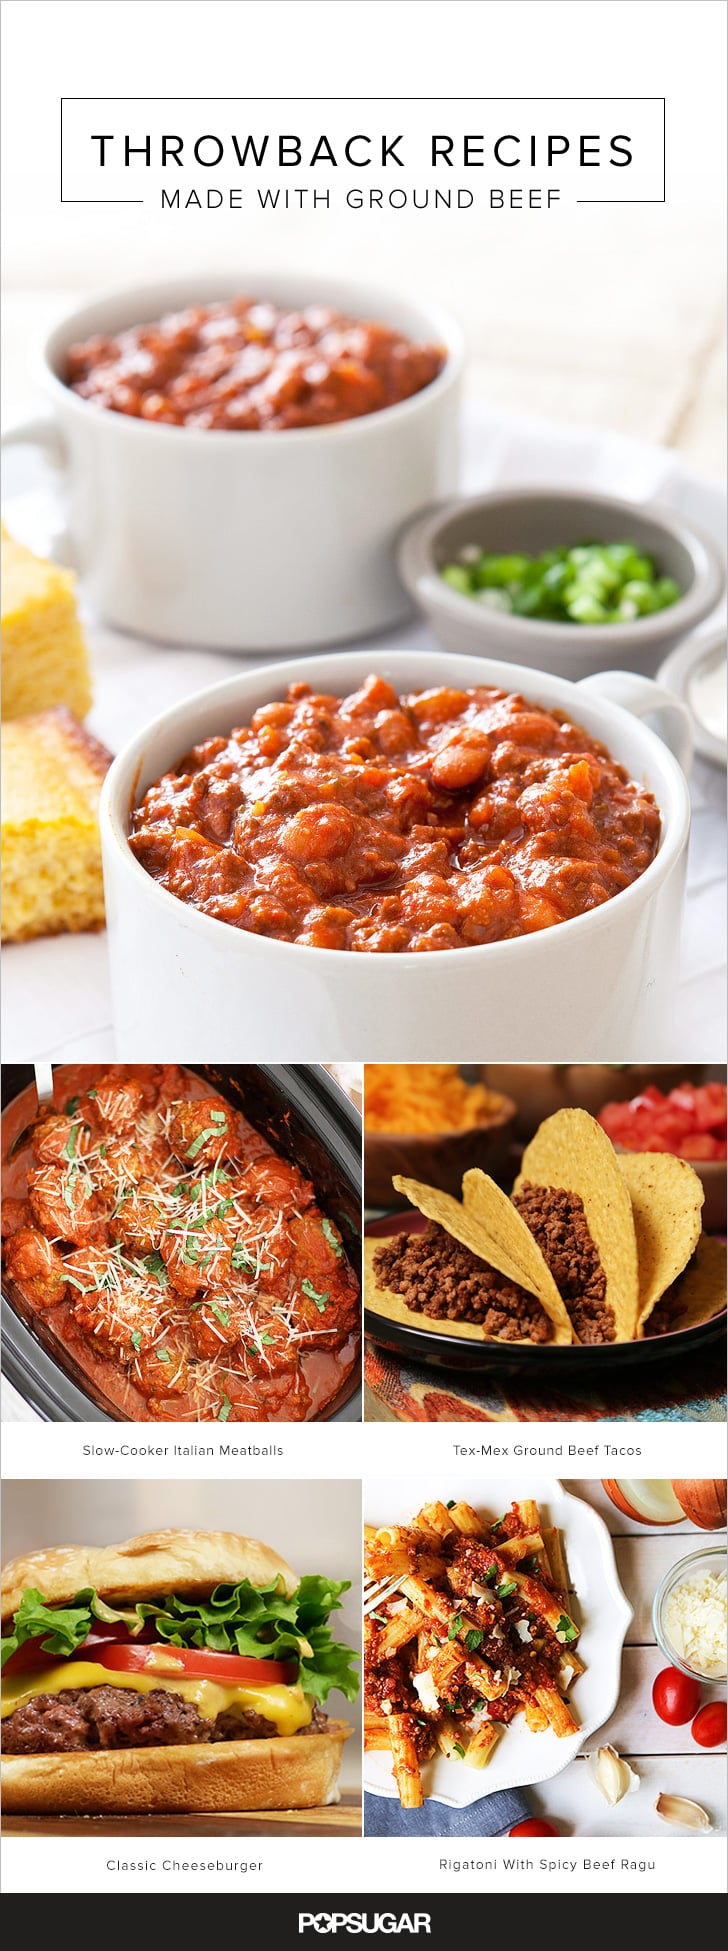 Classic recipes using ground beef popsugar food photo 23 for Meals that can be made with ground beef